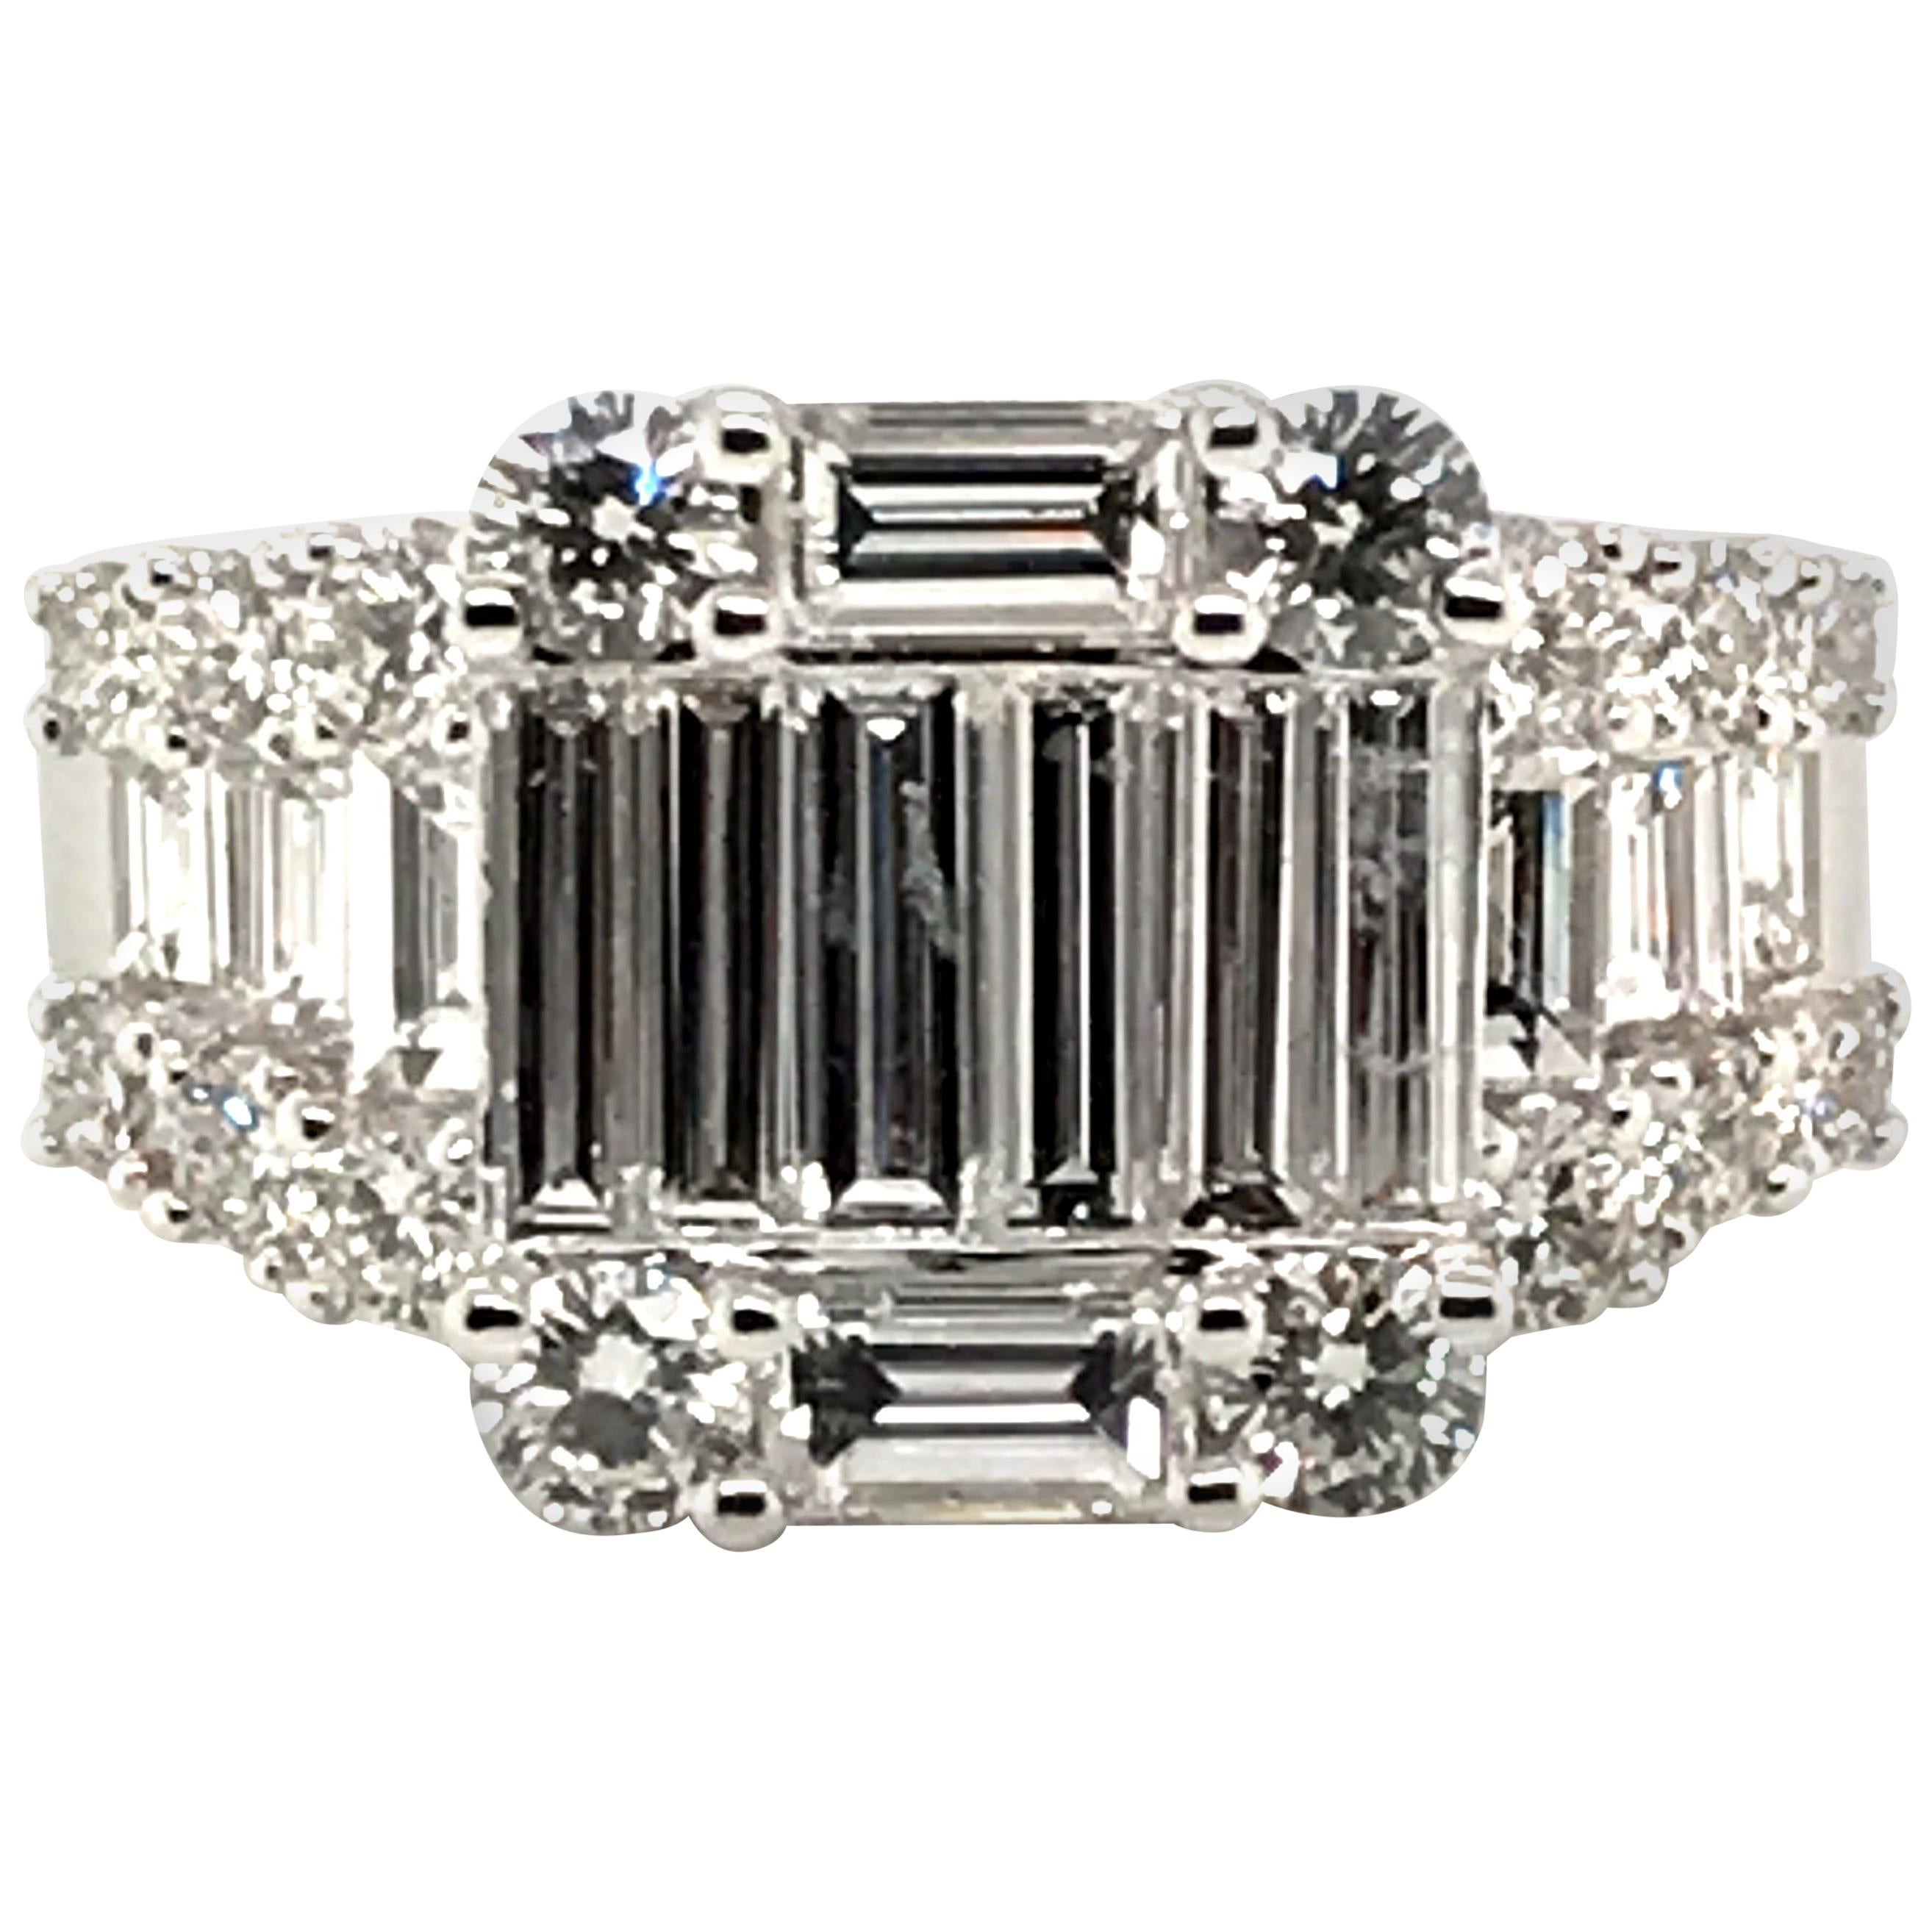 2.54 Carat Baguette and Round Diamond Ring